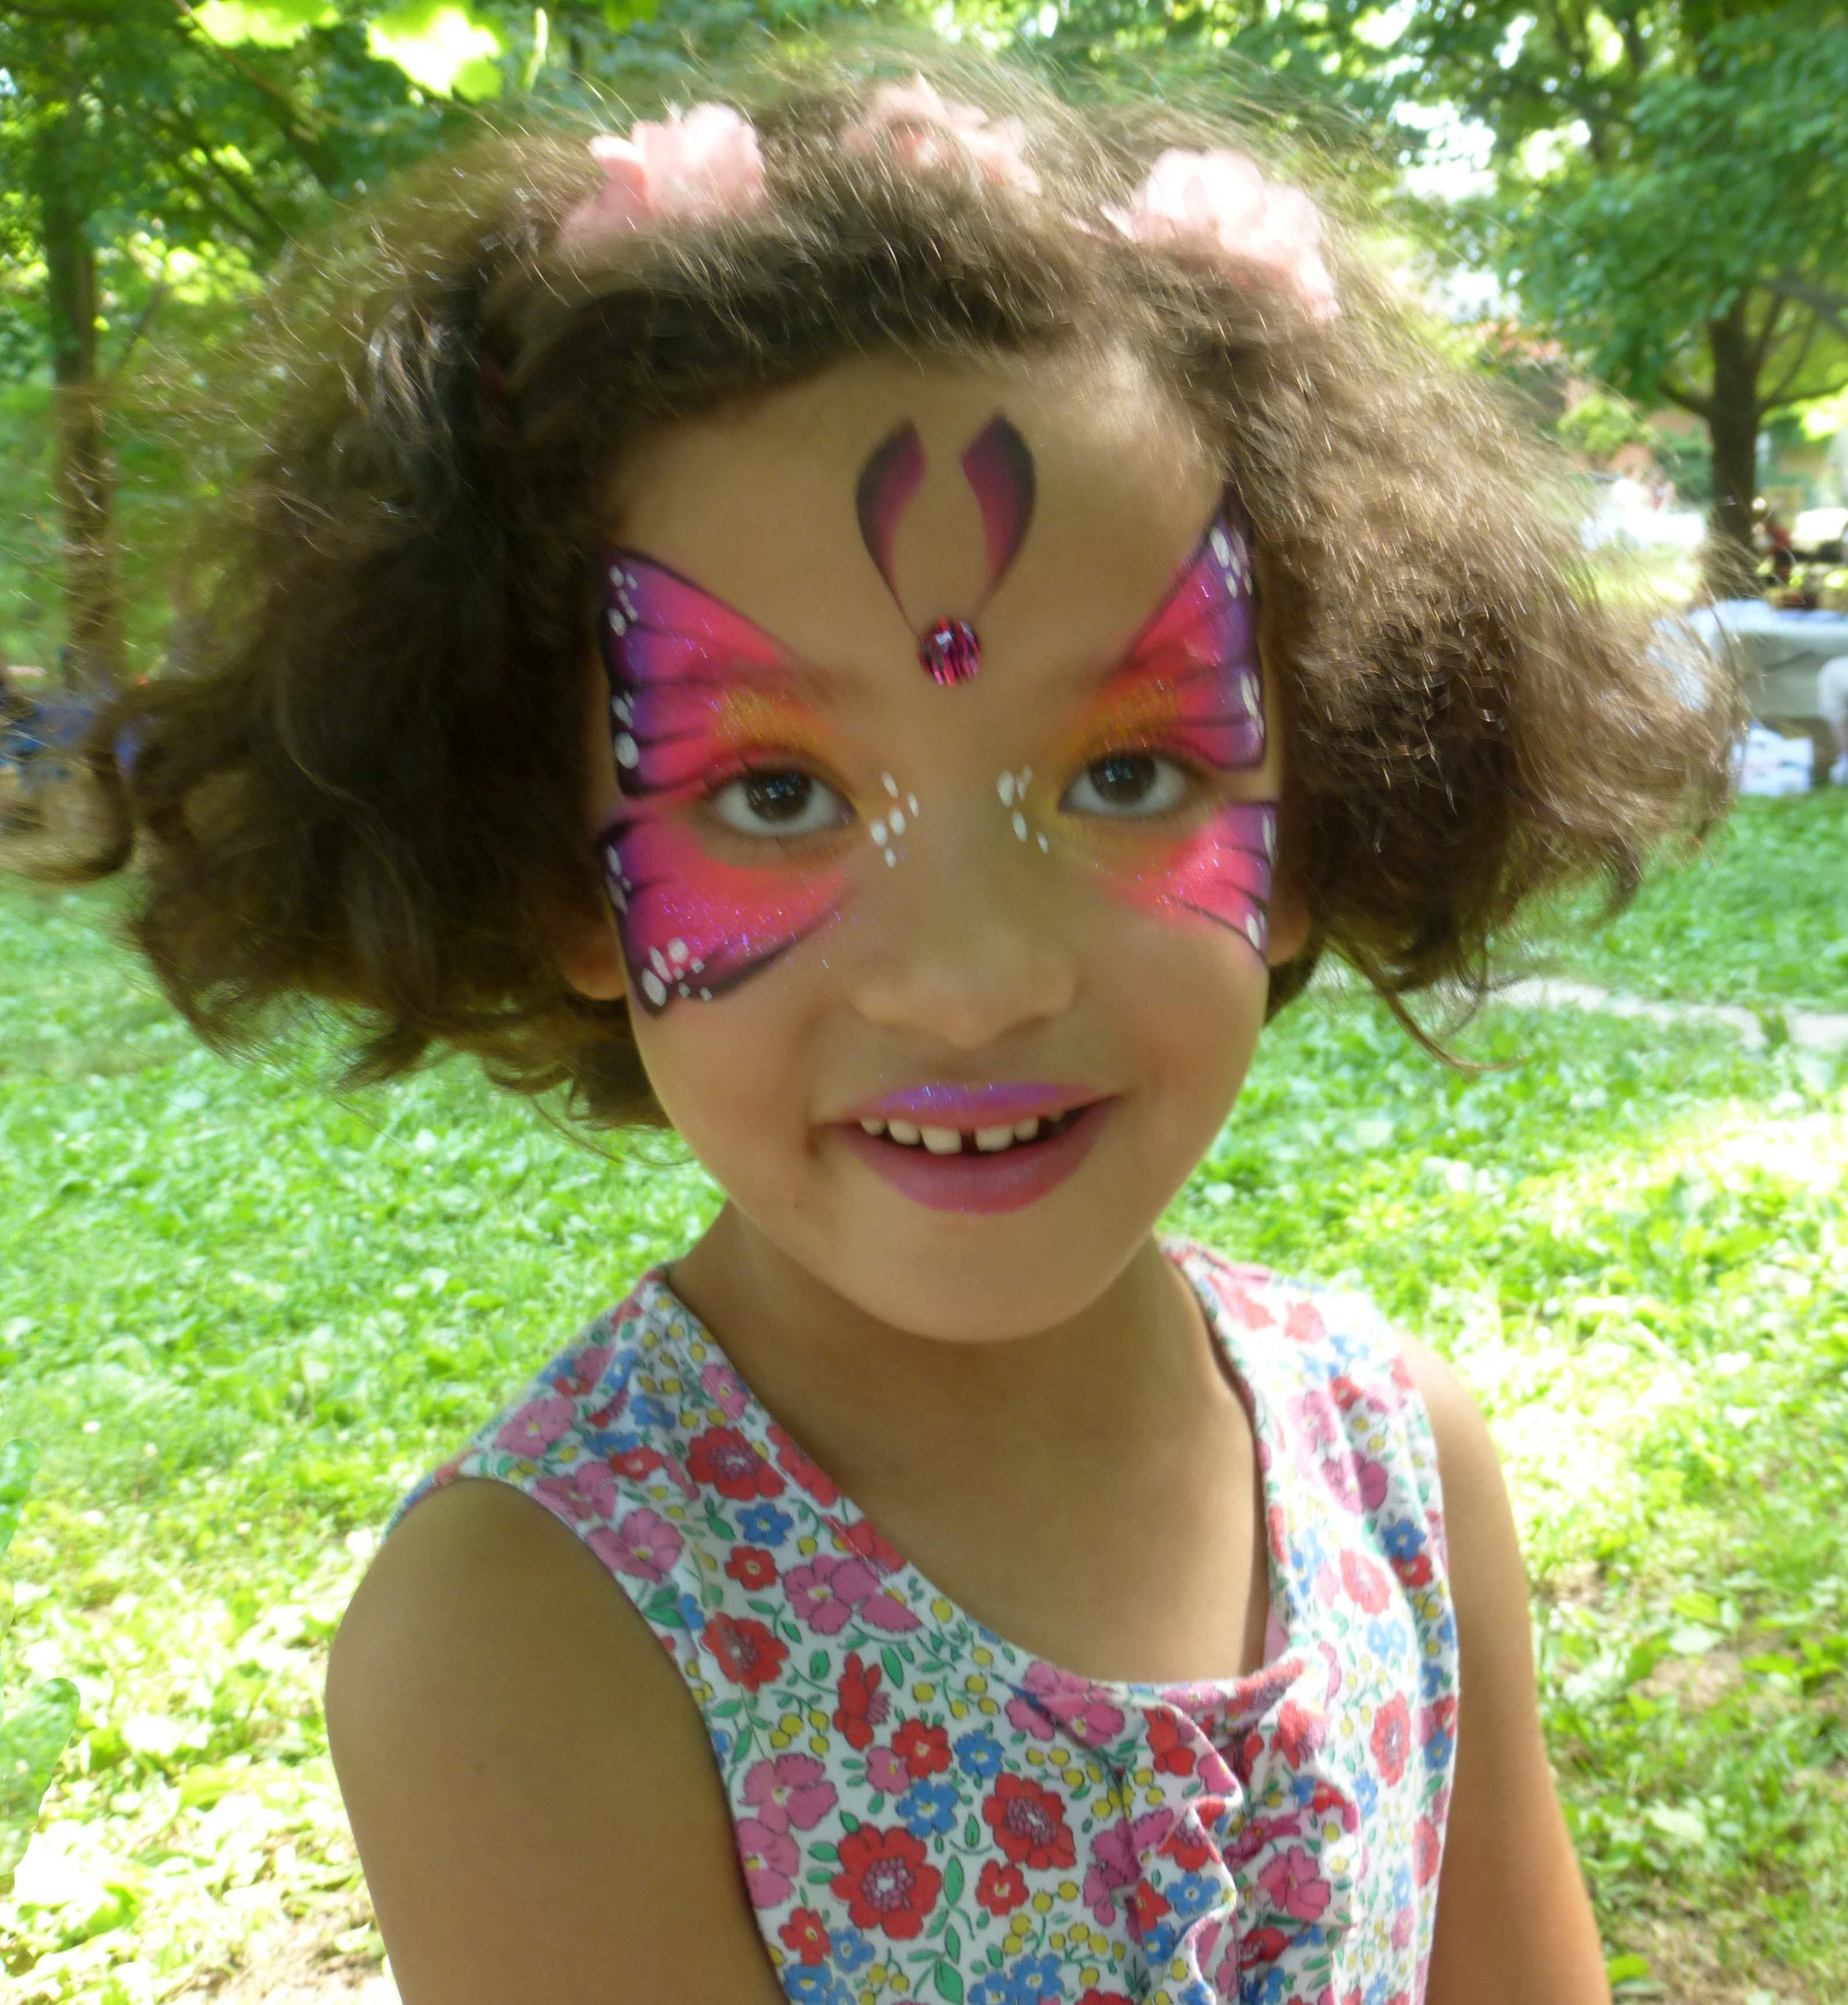 face painting by Let's make a face was a big hit.